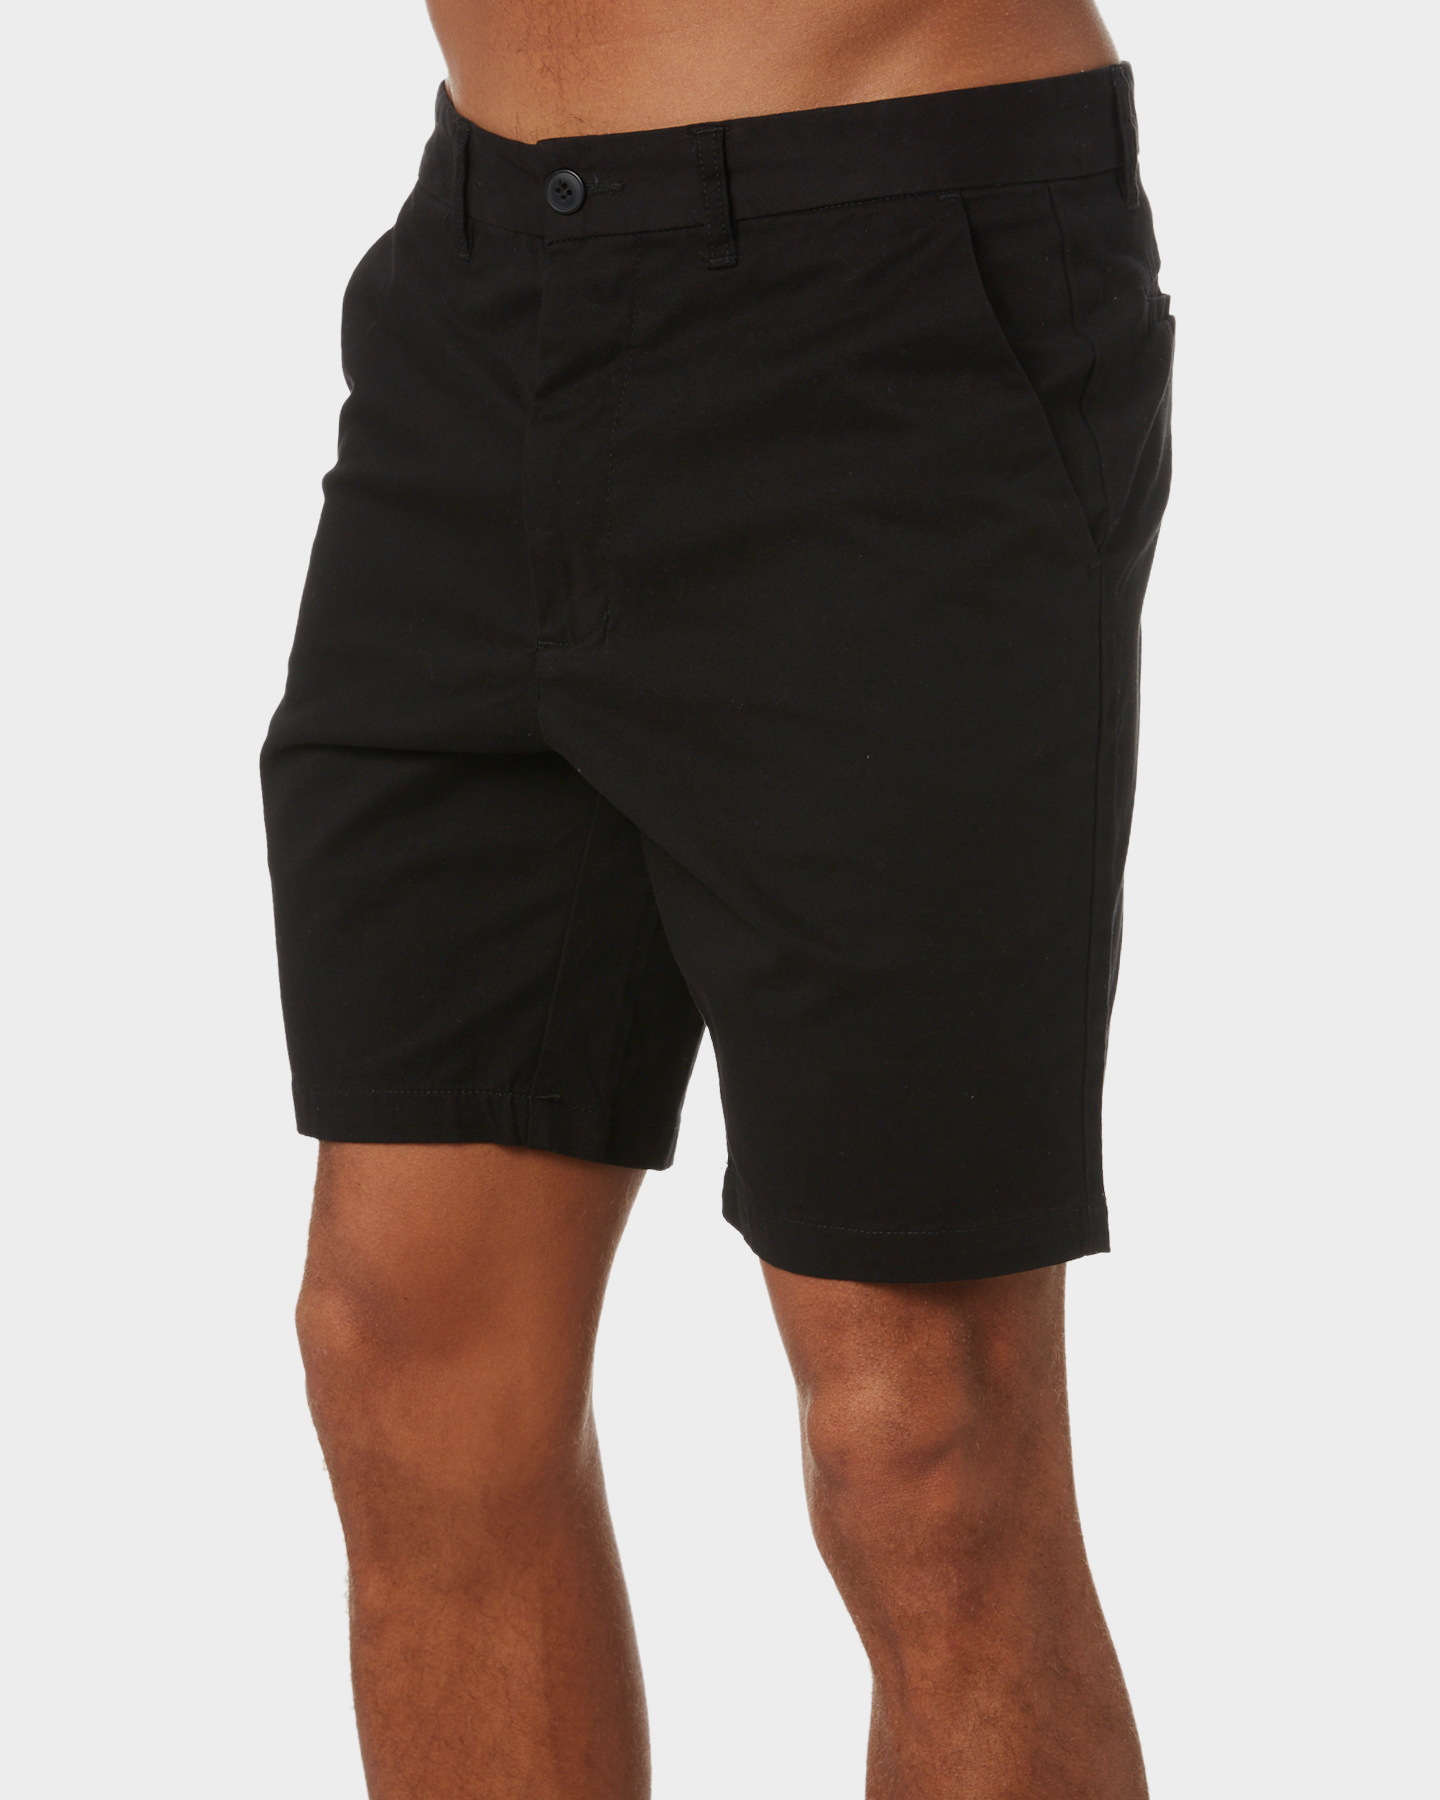 New-Swell-Men-039-s-Dandy-Mens-Chino-Short-Cotton-Fitted-Elastane-Blue thumbnail 7